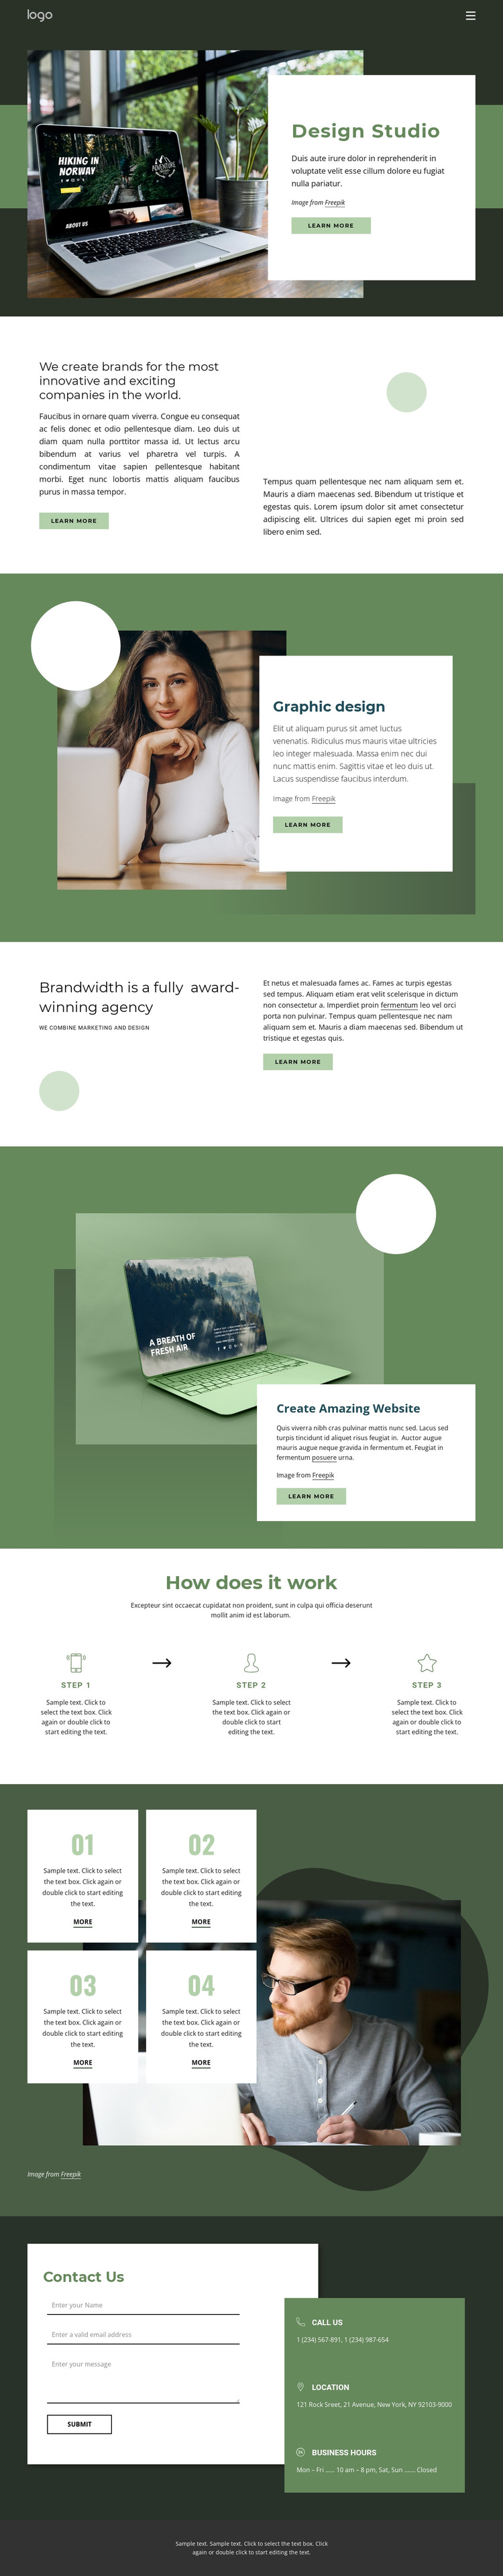 Design inspiration from nature Joomla Page Builder